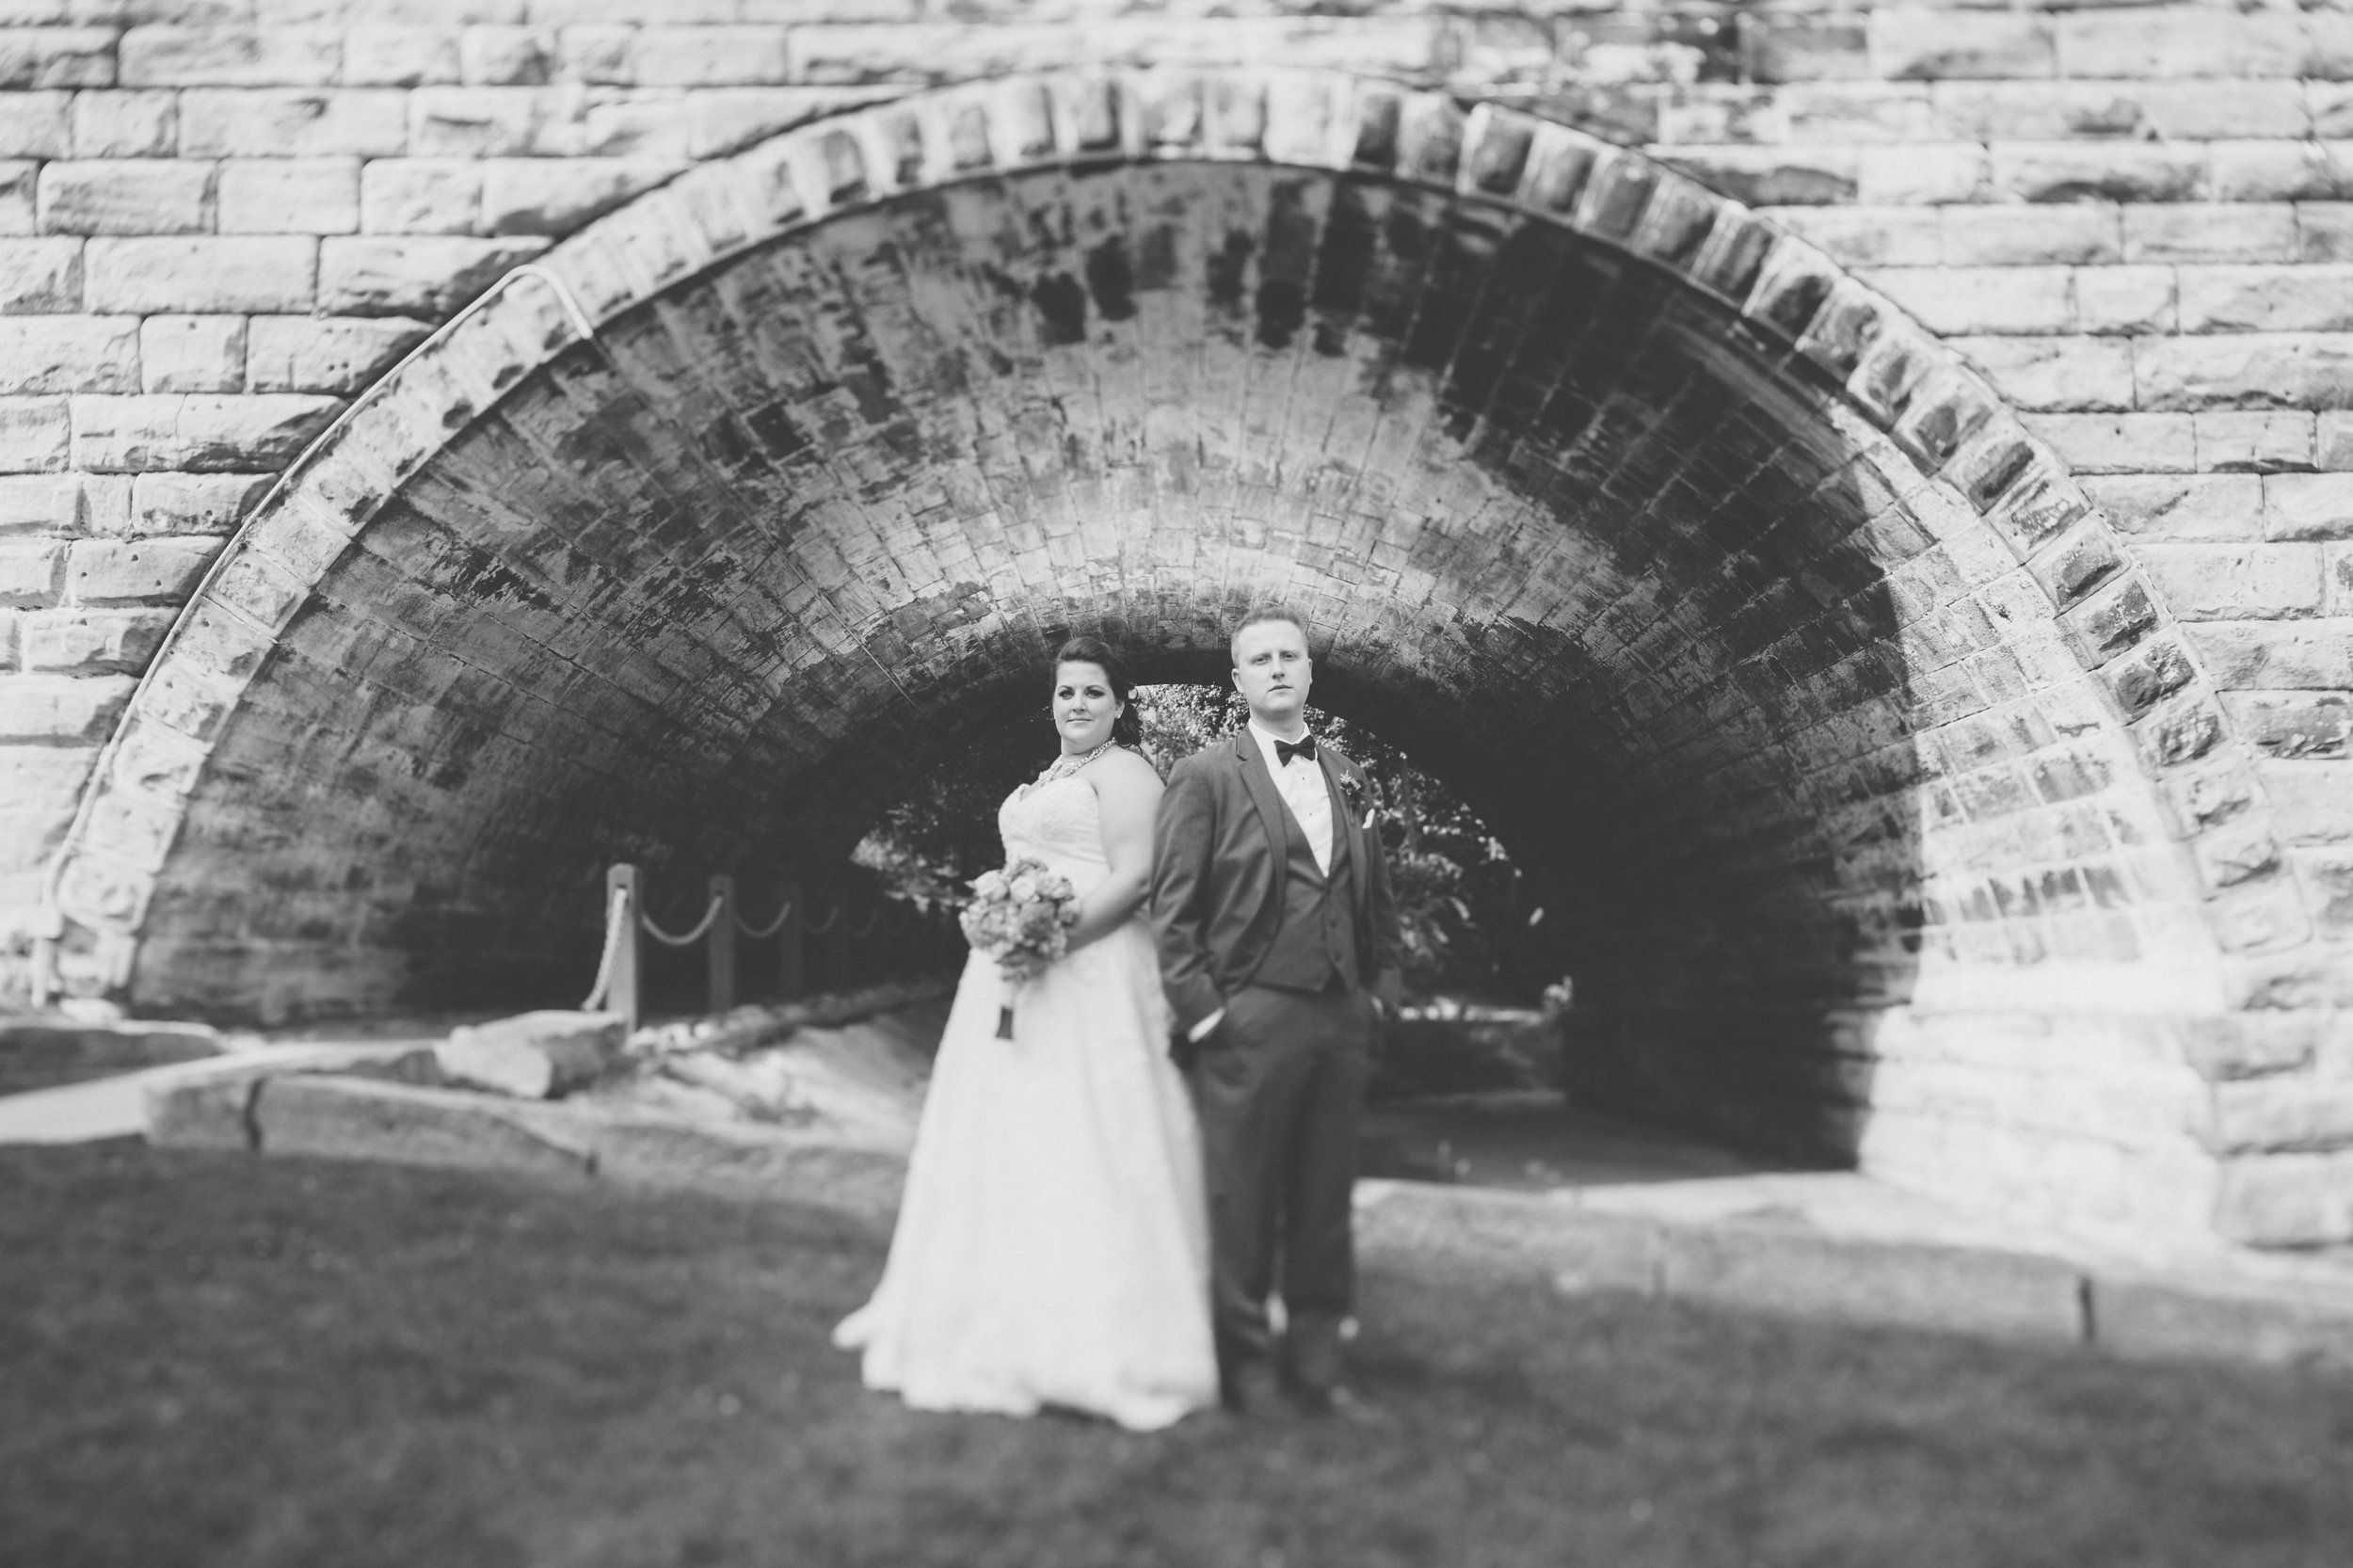 Bride_and_groom_at_Kent_Ohio_Dam